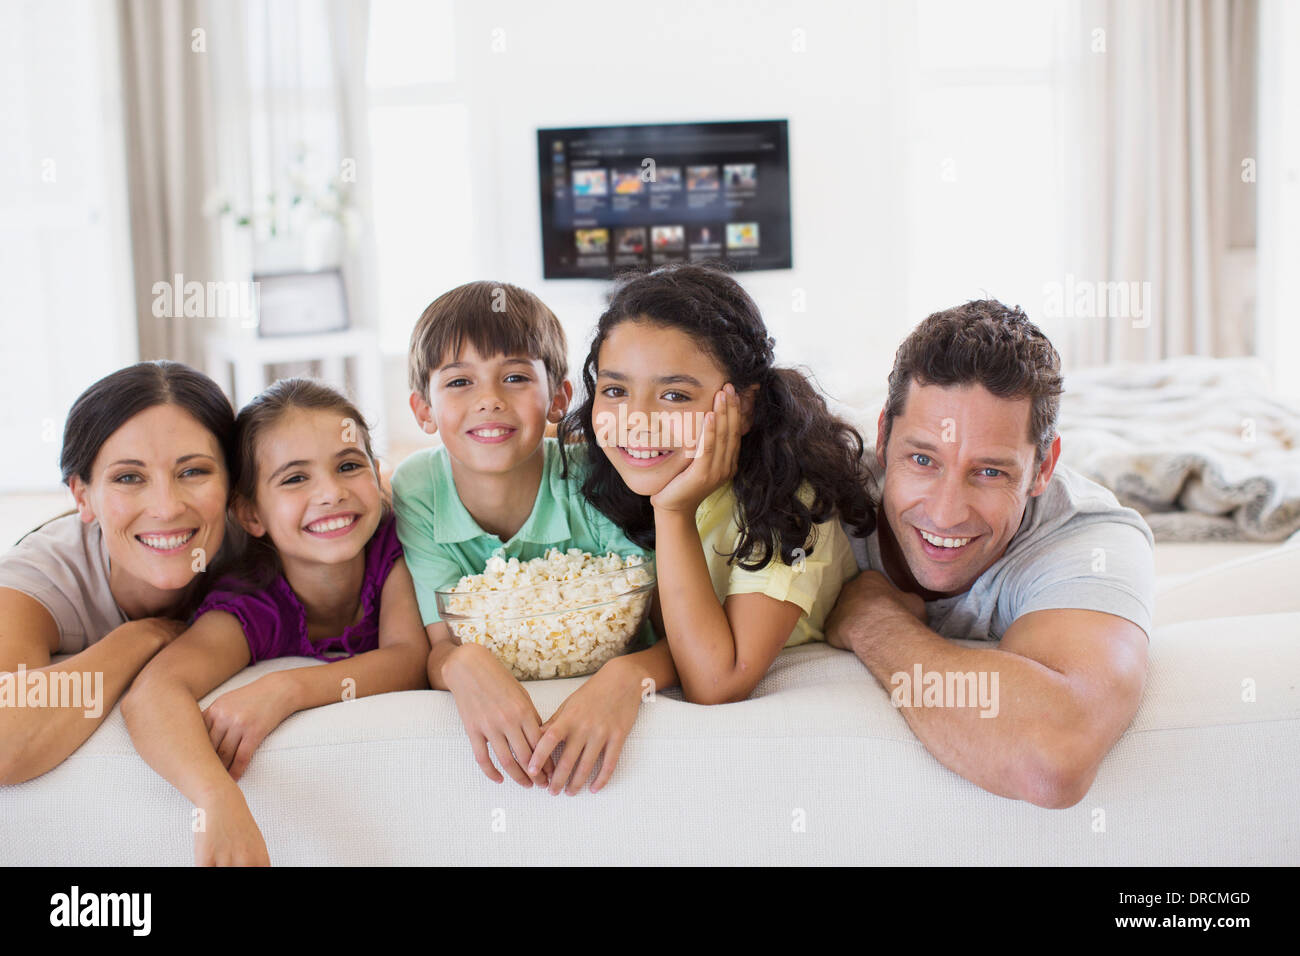 Family relaxing together on sofa in living room Stock Photo